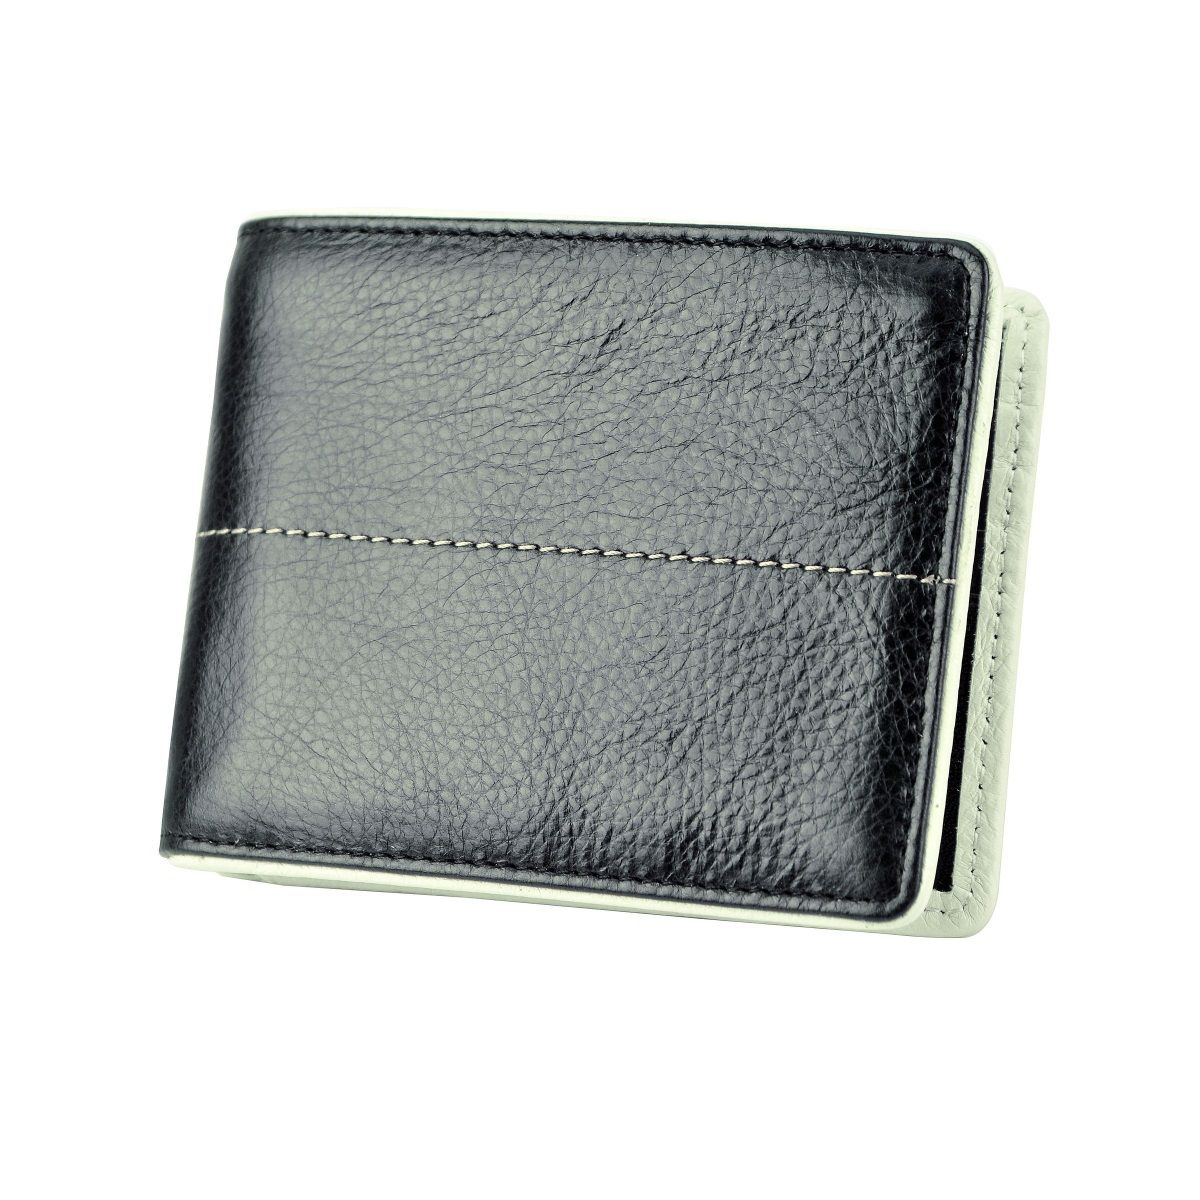 J.FOLD Stitched Panel Leather Wallet - Black